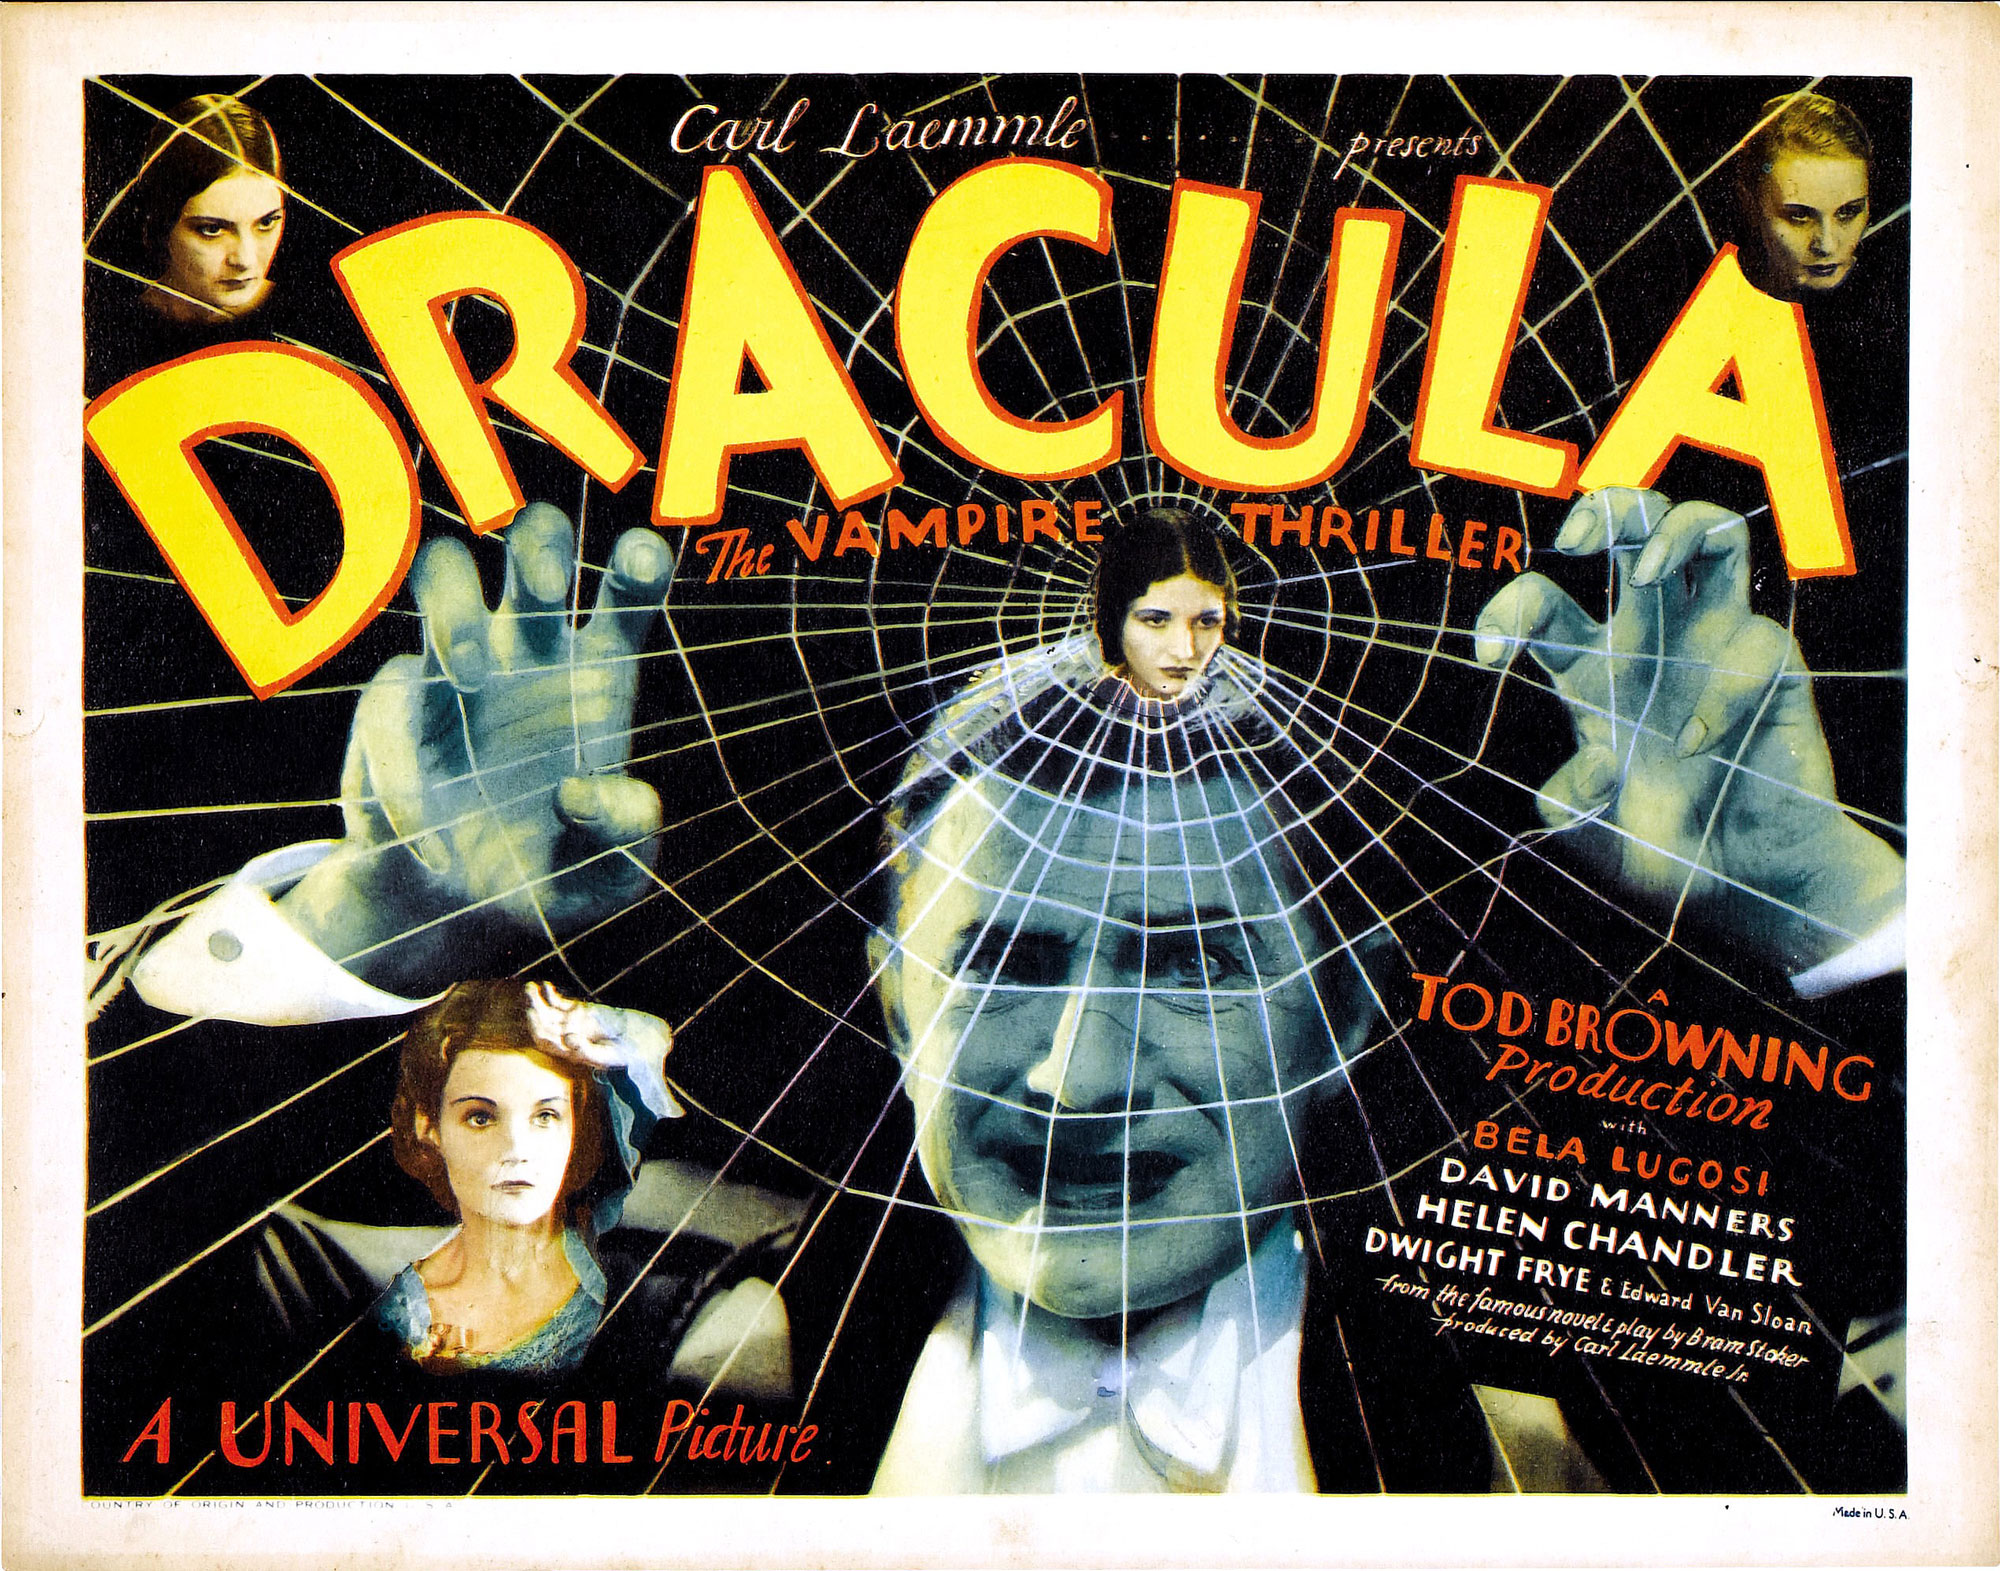 Poster promoting the film adaptation of Dracula starring Bela Lugosi